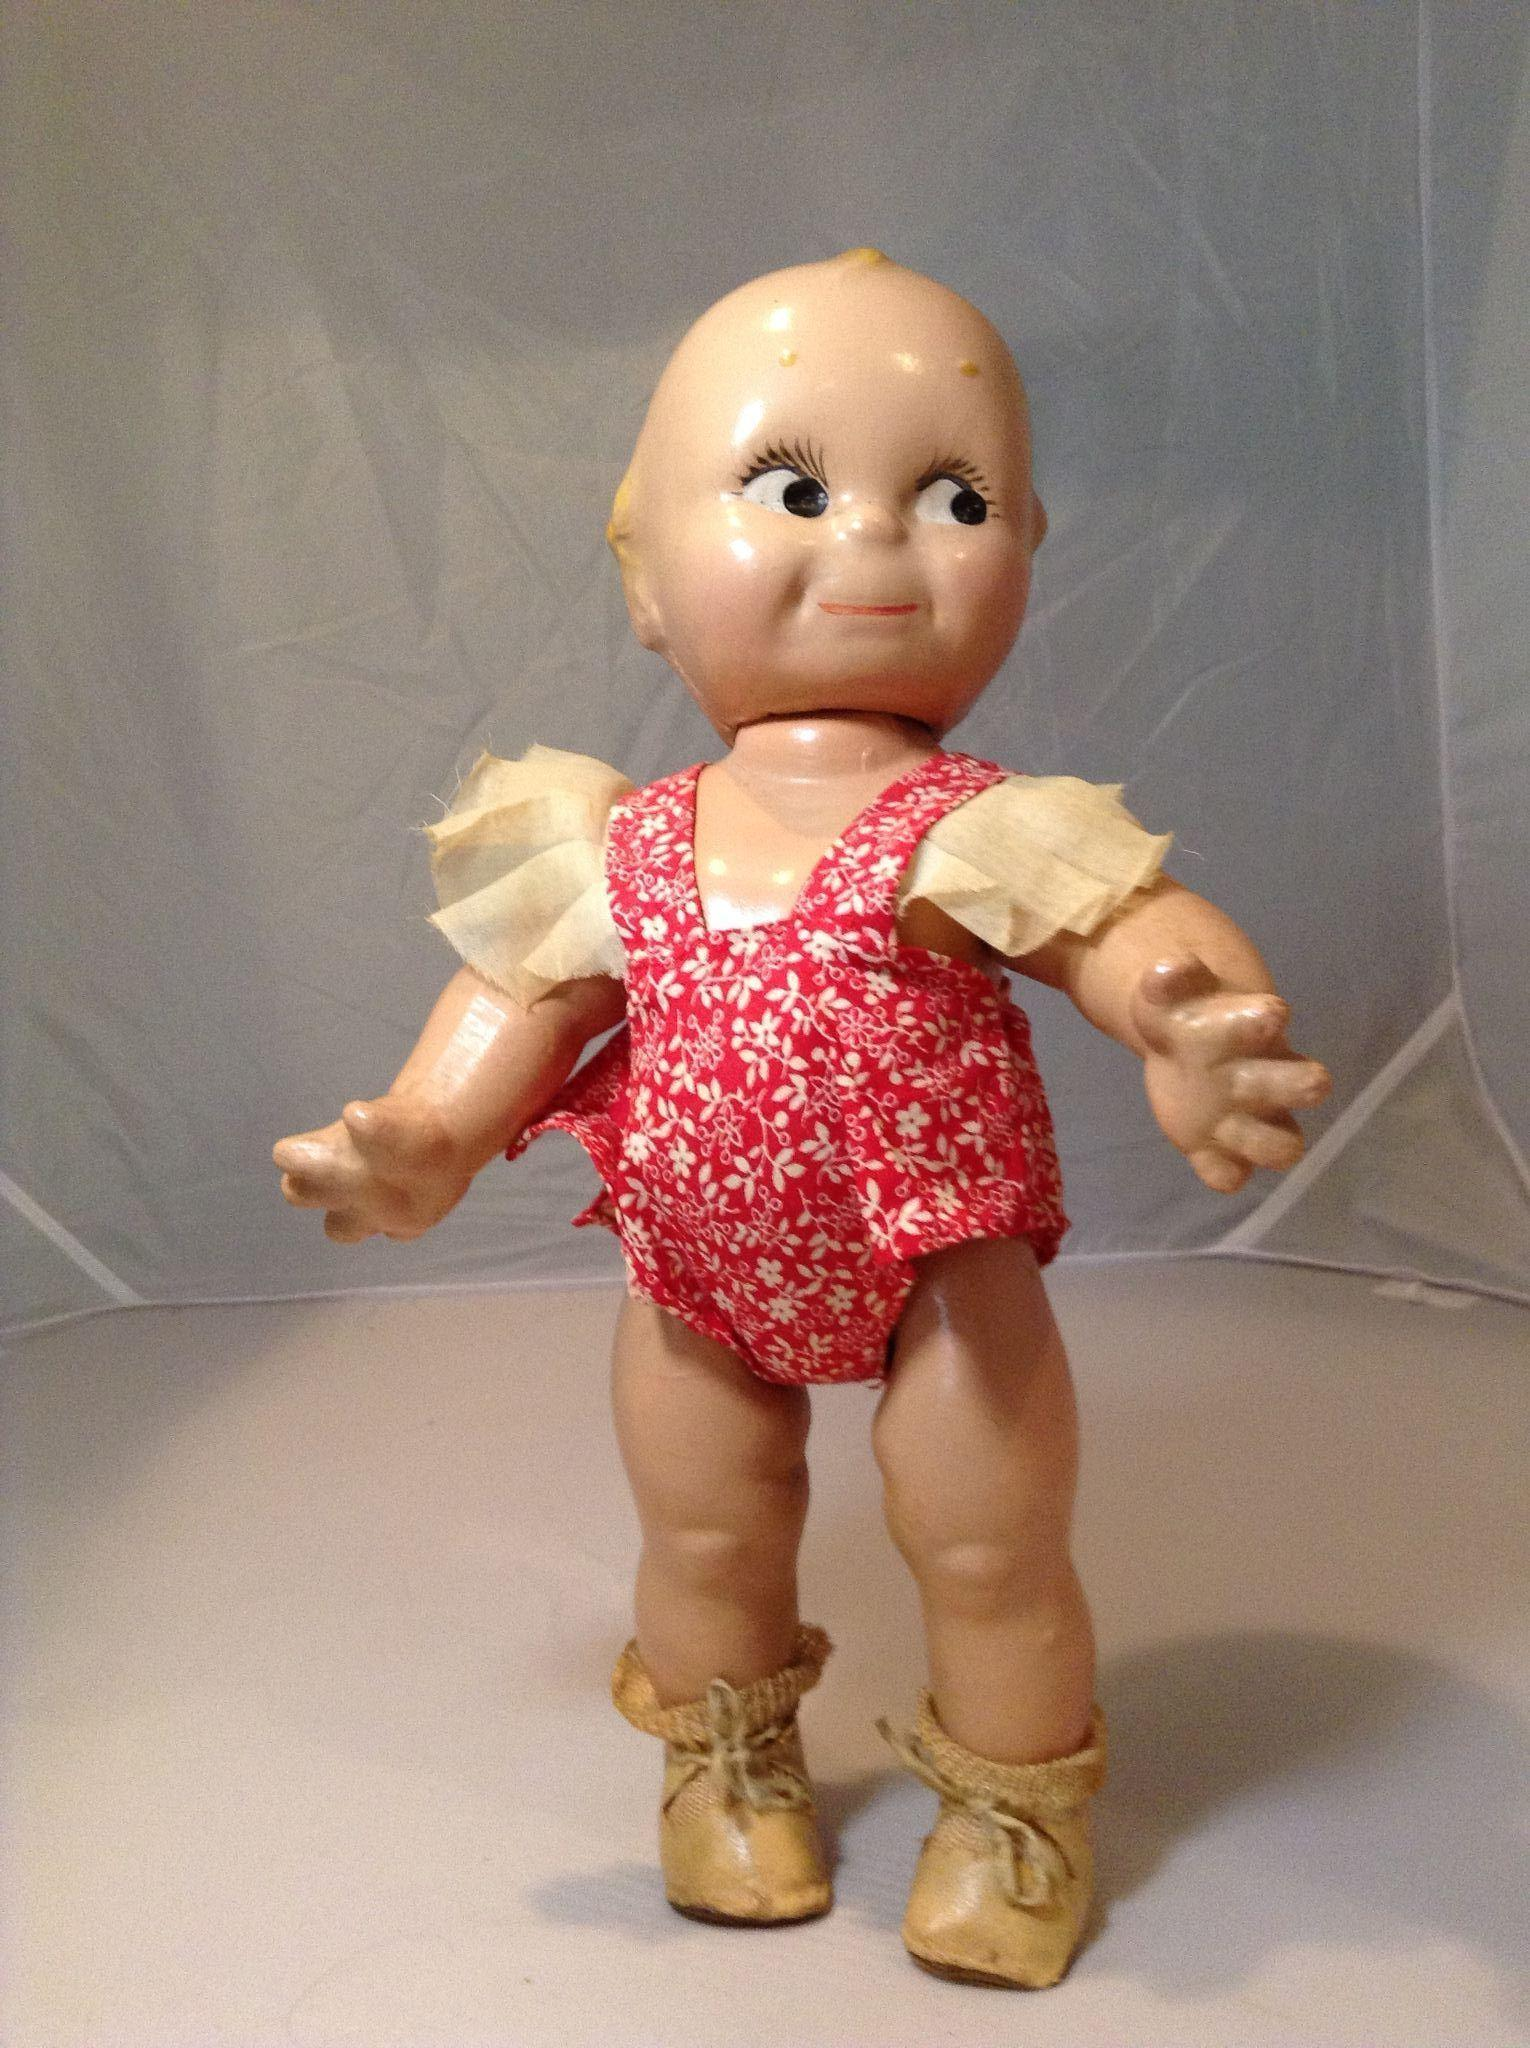 Composition Kewpie in Original Sunsuit, Shoes and Socks